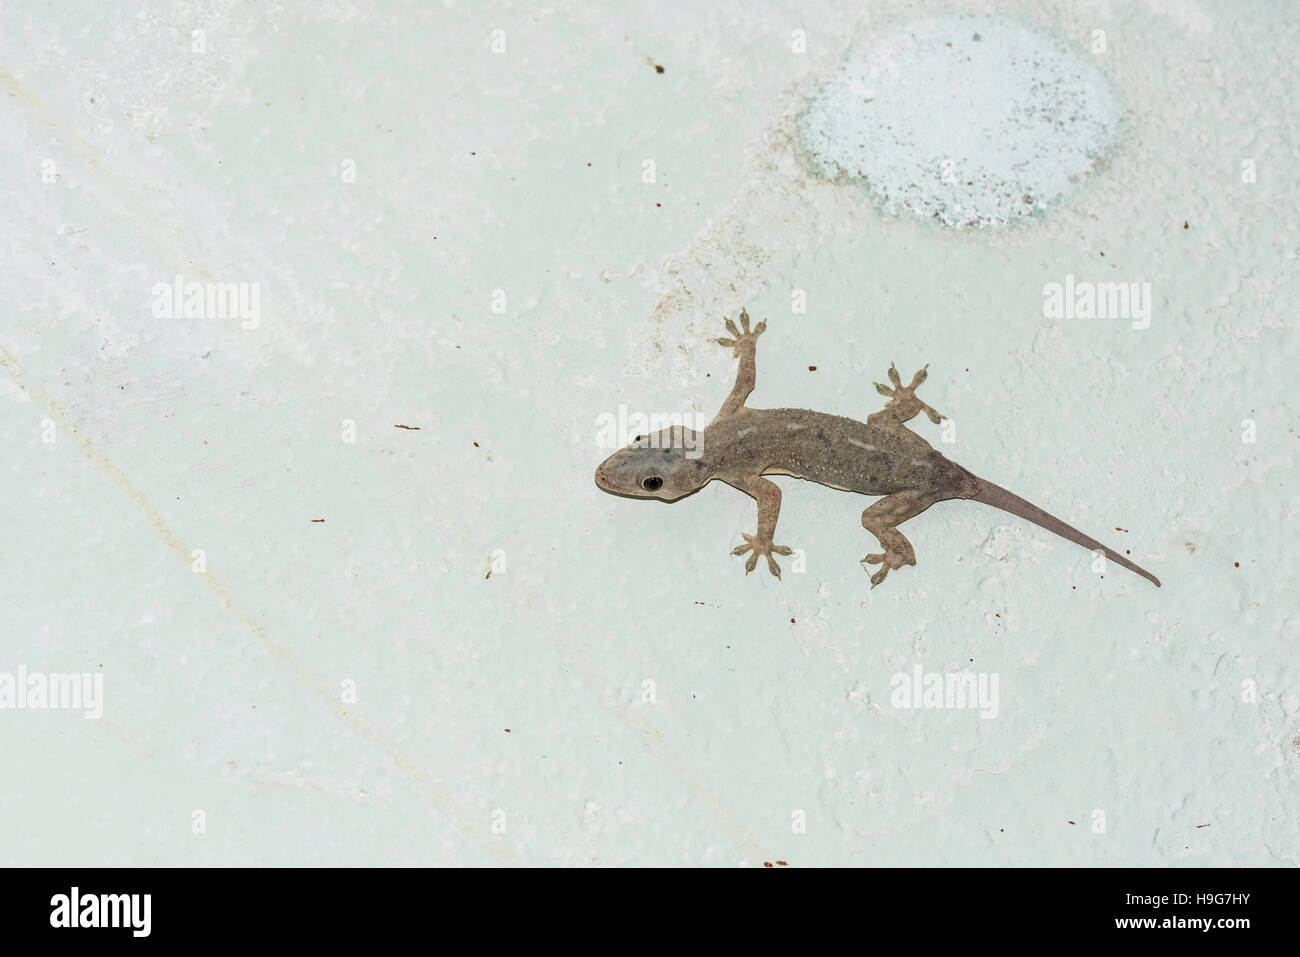 a tropical house gecko stock photo, royalty free image: 126361703